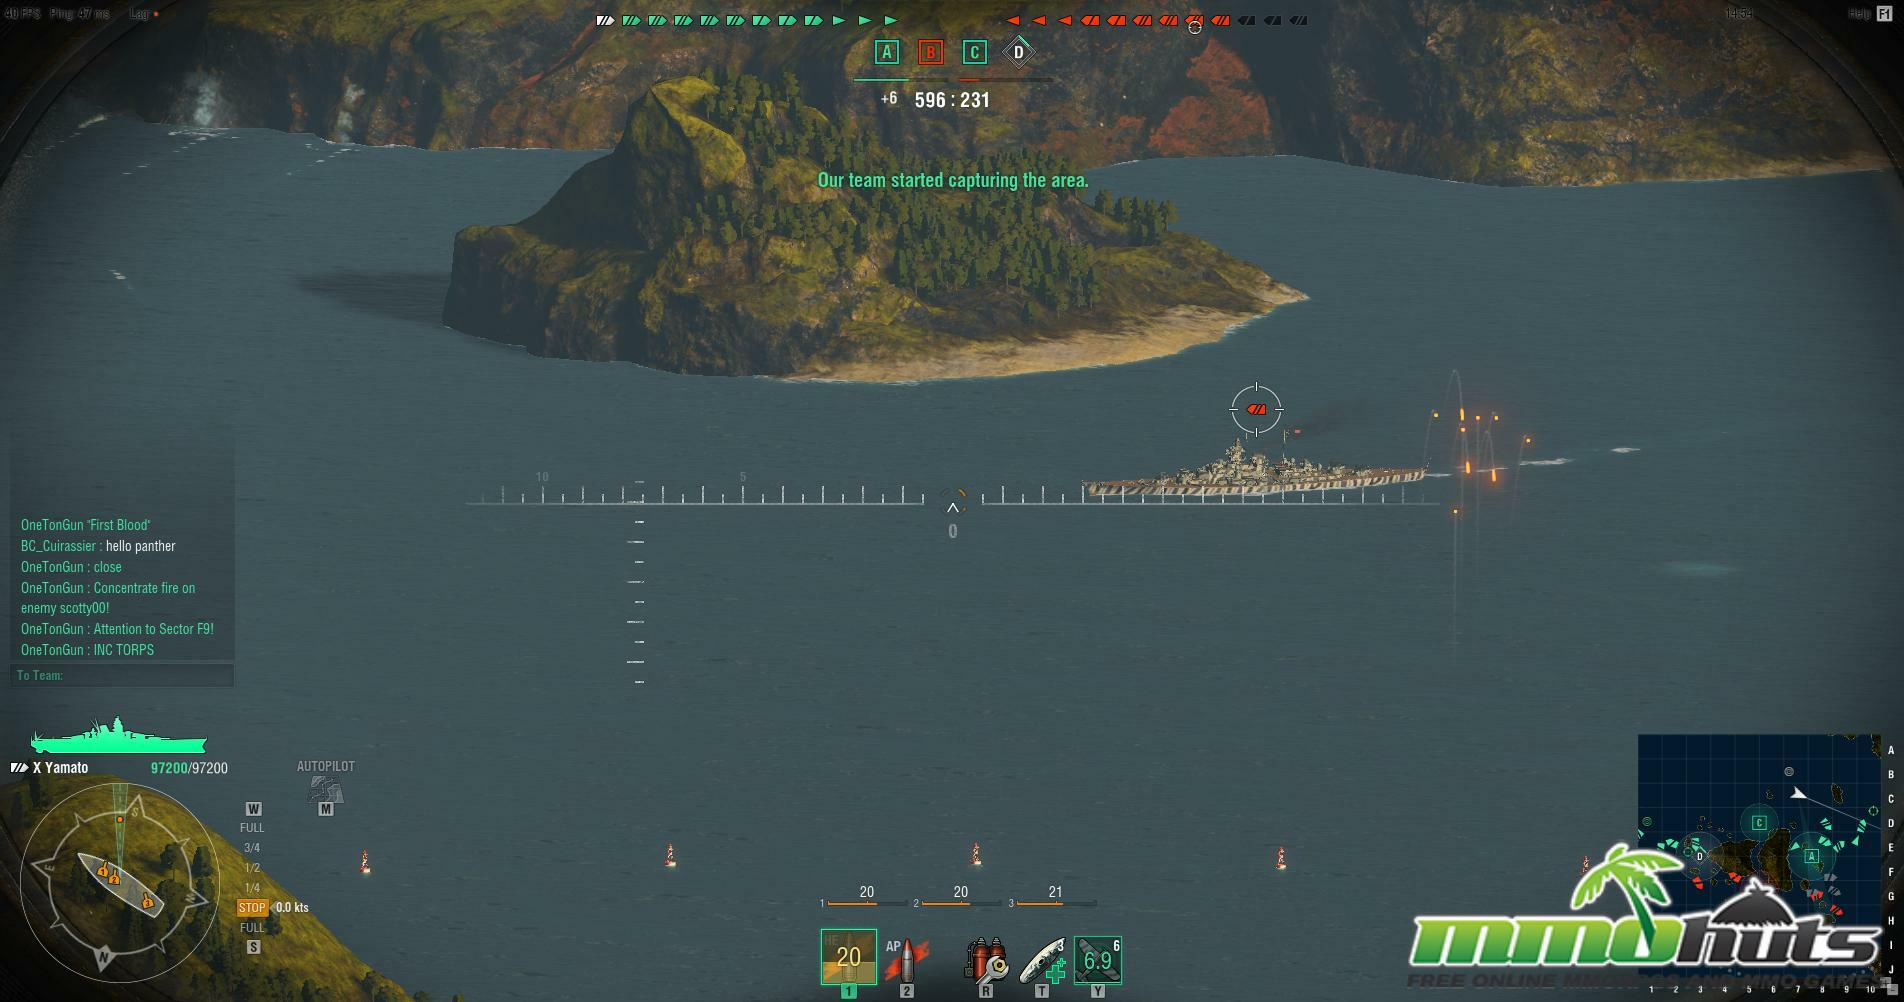 worldofwarships 2015-10-01 16-33-42-38